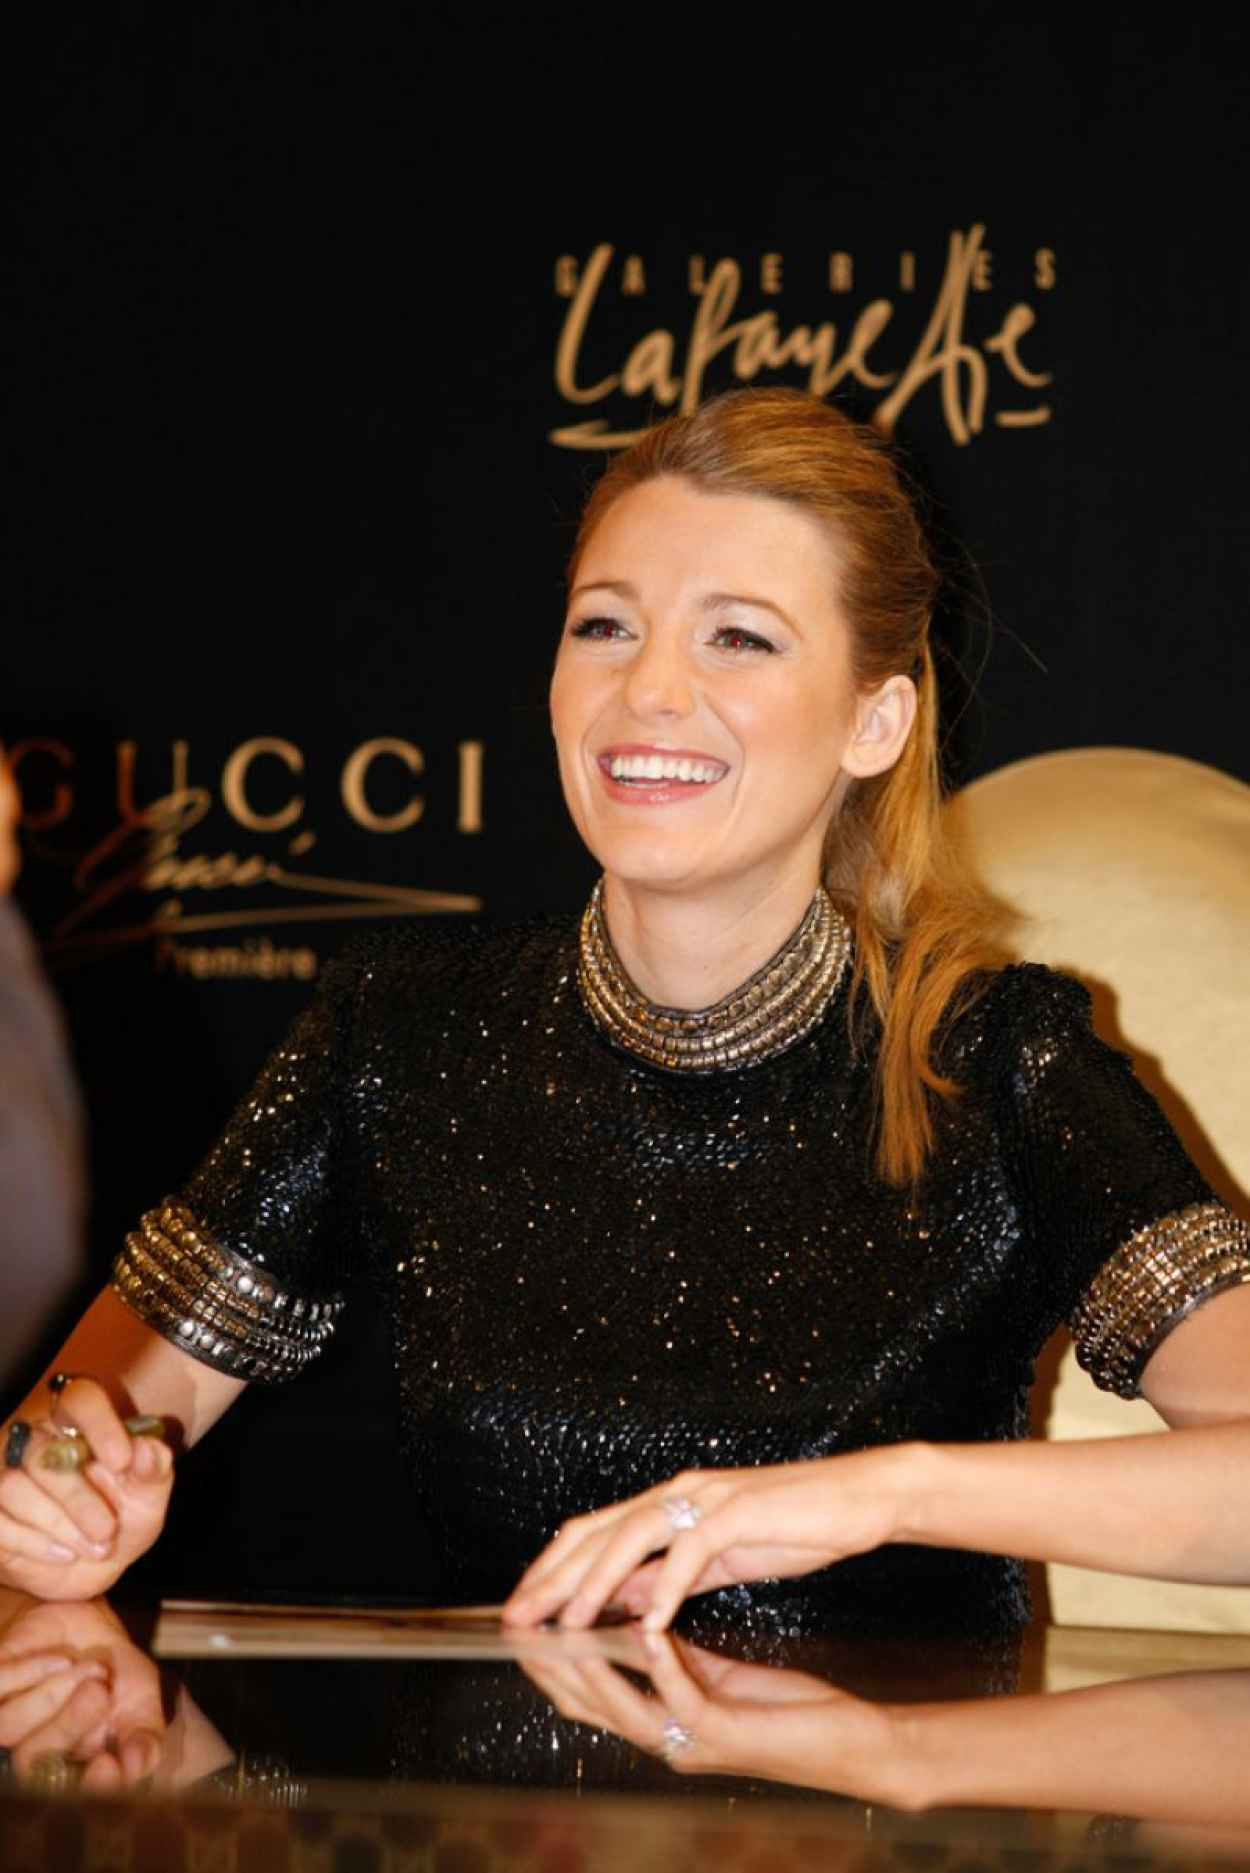 Blake Lively Attends the Gucci Premiere Meet and Greet in Dubai - January 2015-1